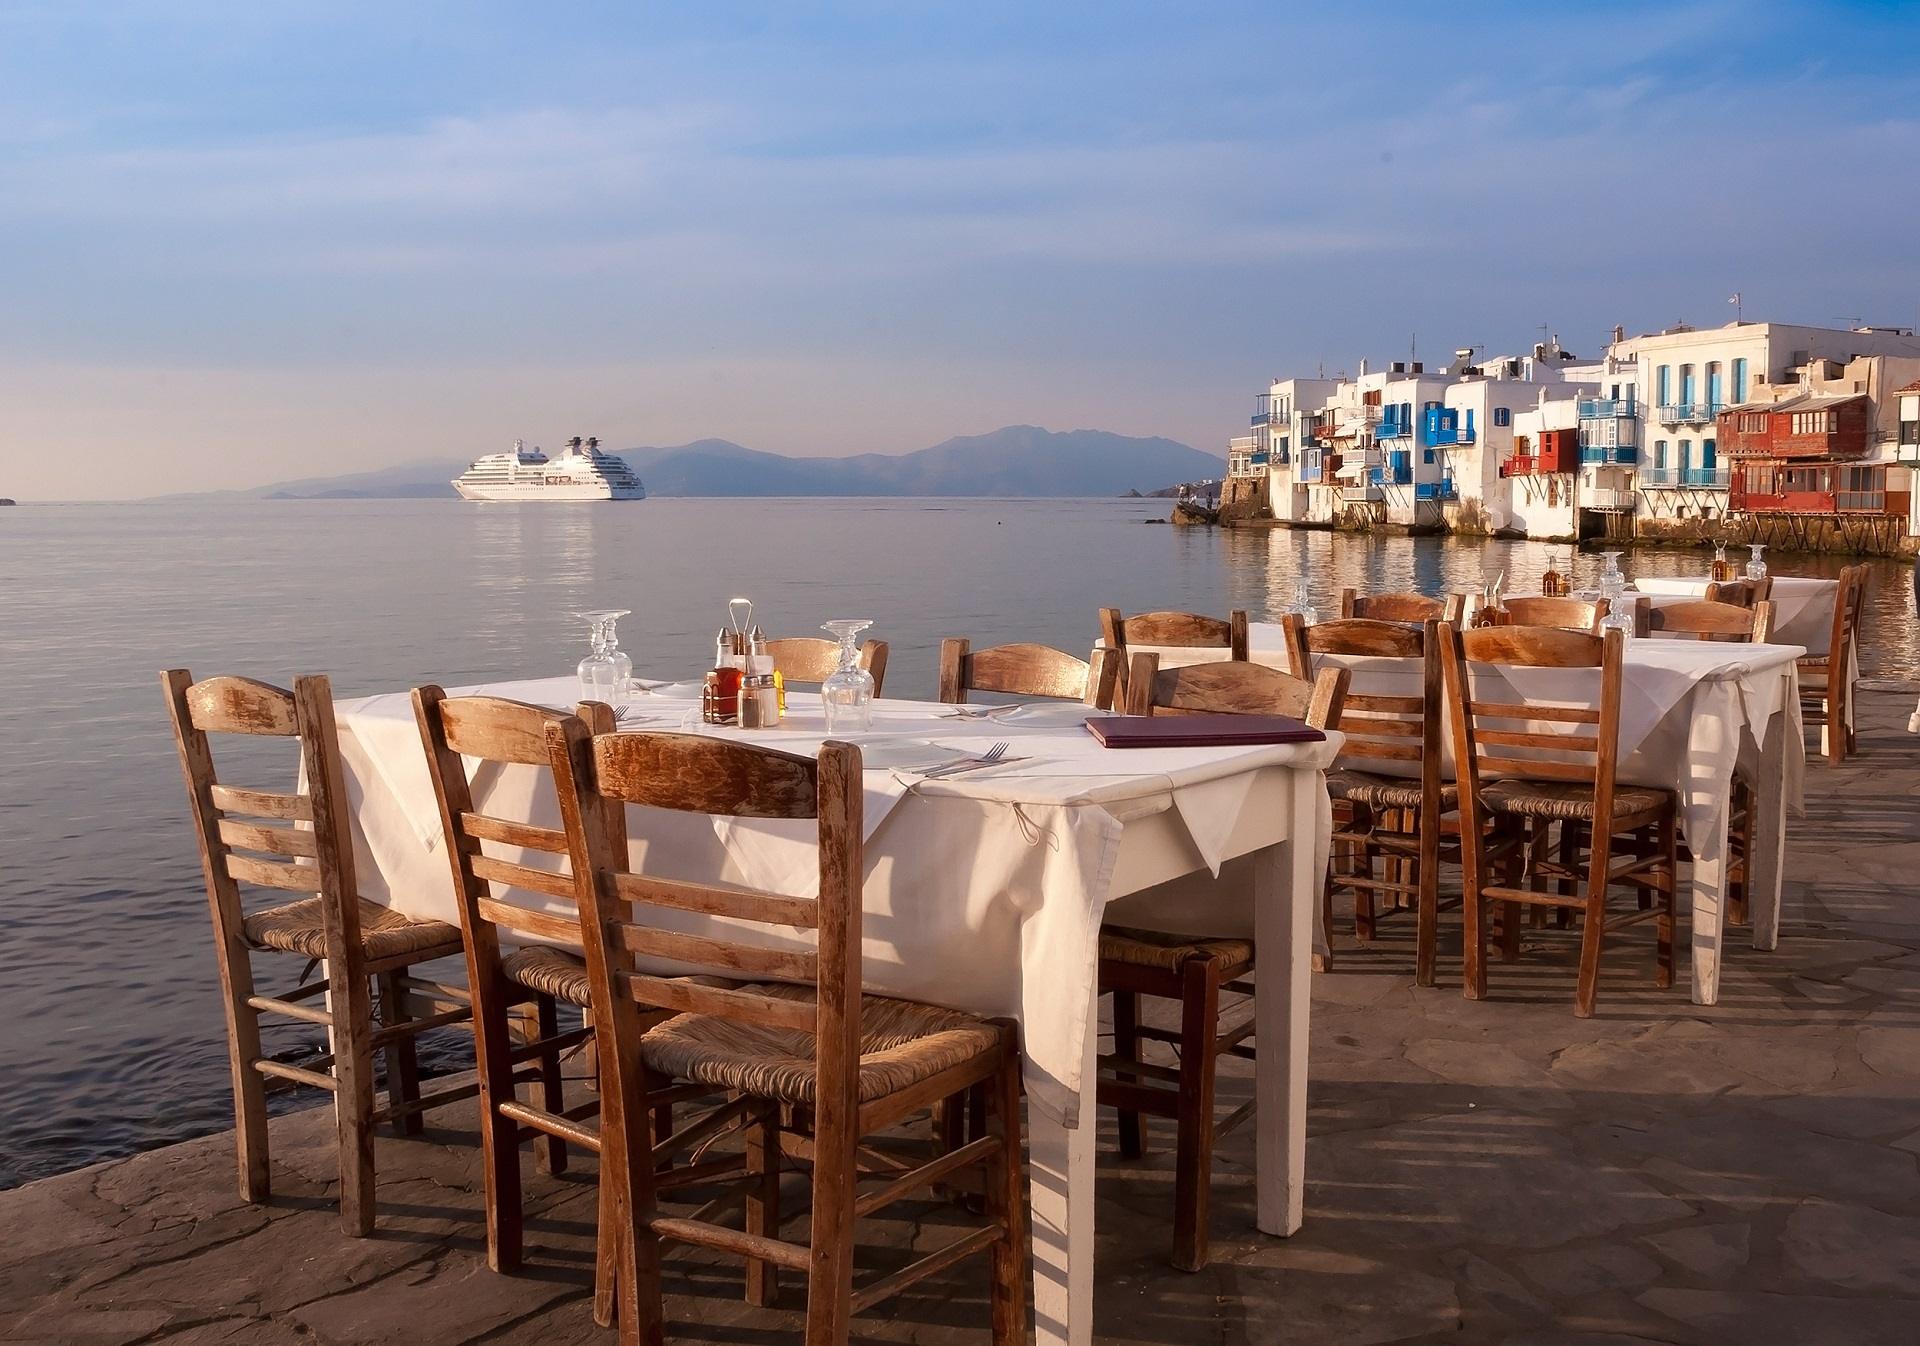 Restaurant at Little Venice on the island of Mykonos in Greece